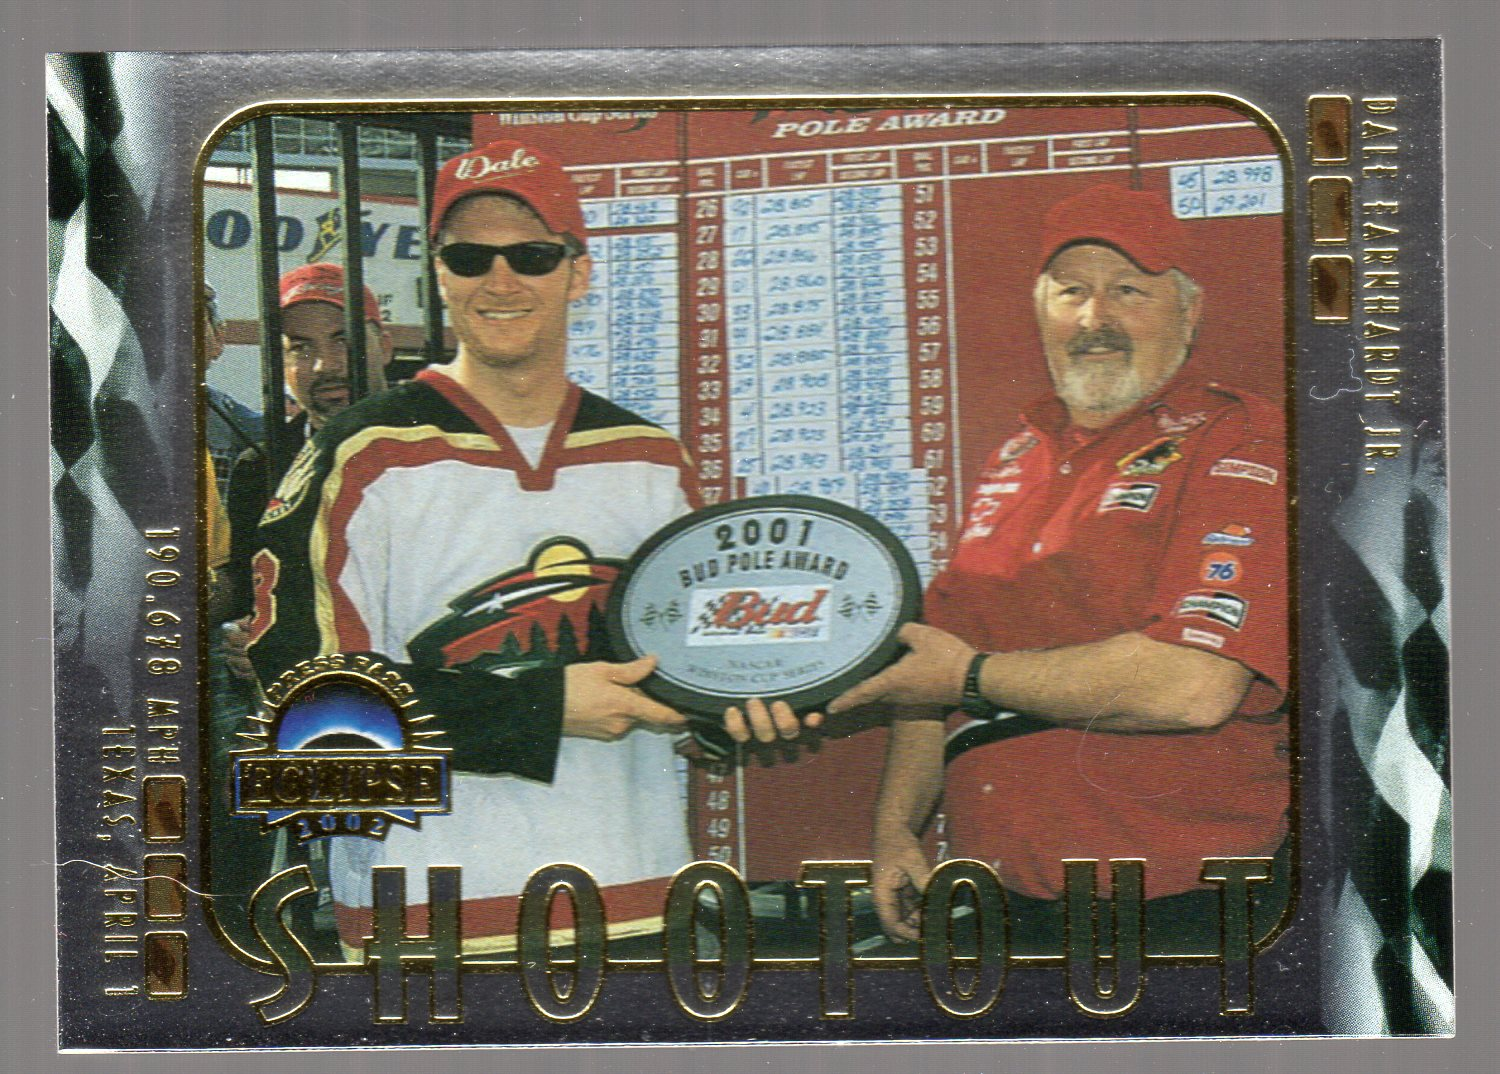 2002 Press Pass Eclipse Solar Eclipse #S40 Dale Earnhardt Jr. SO